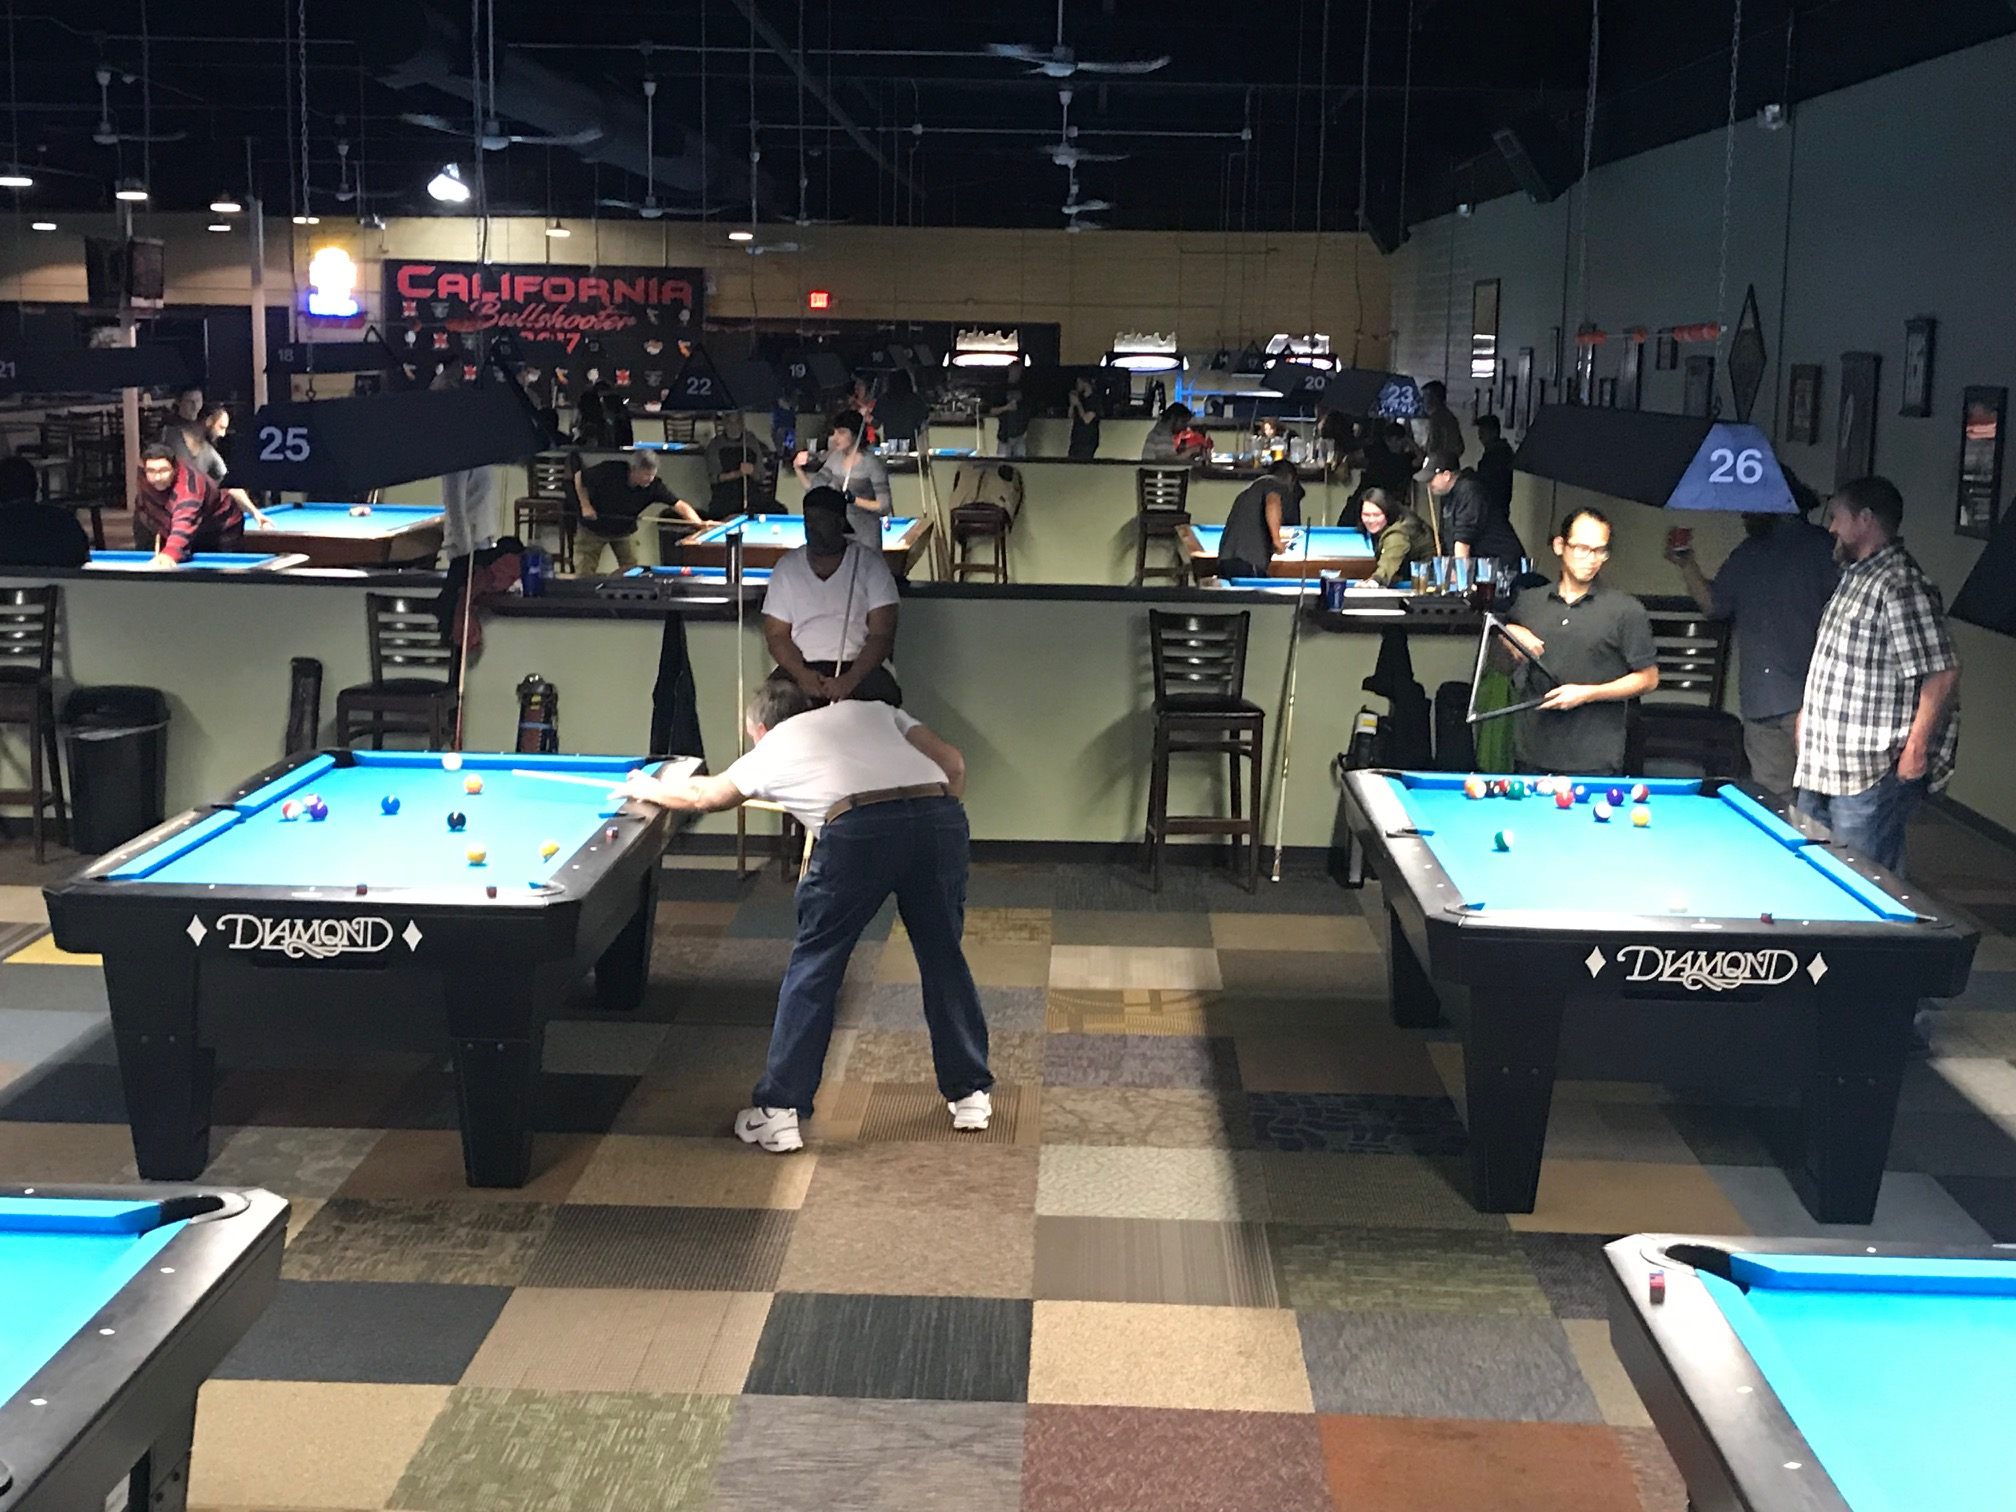 Pool Girls Billiards Drinks Leagues